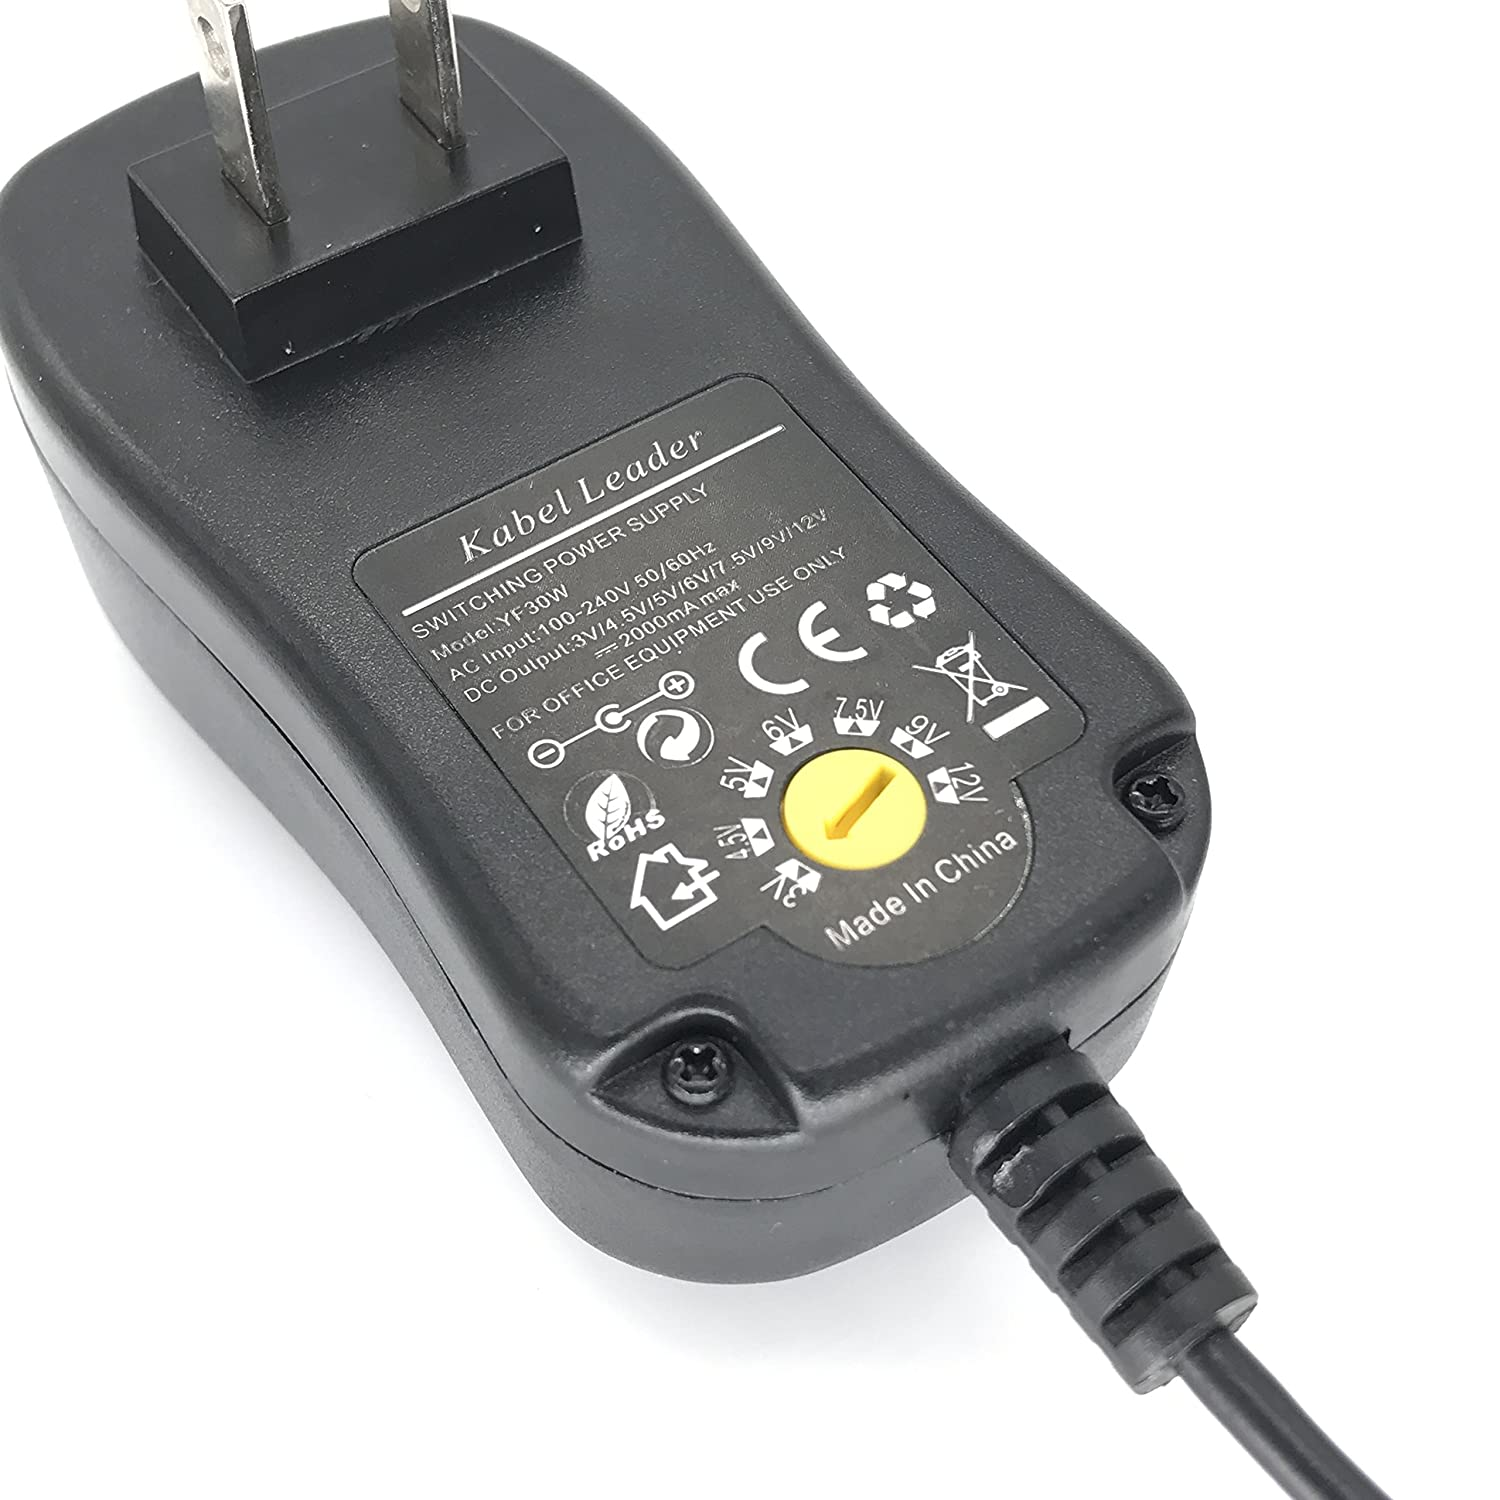 Amazon.com: Kabel leader Universal AC/DC Adapter Multi-Voltage ...